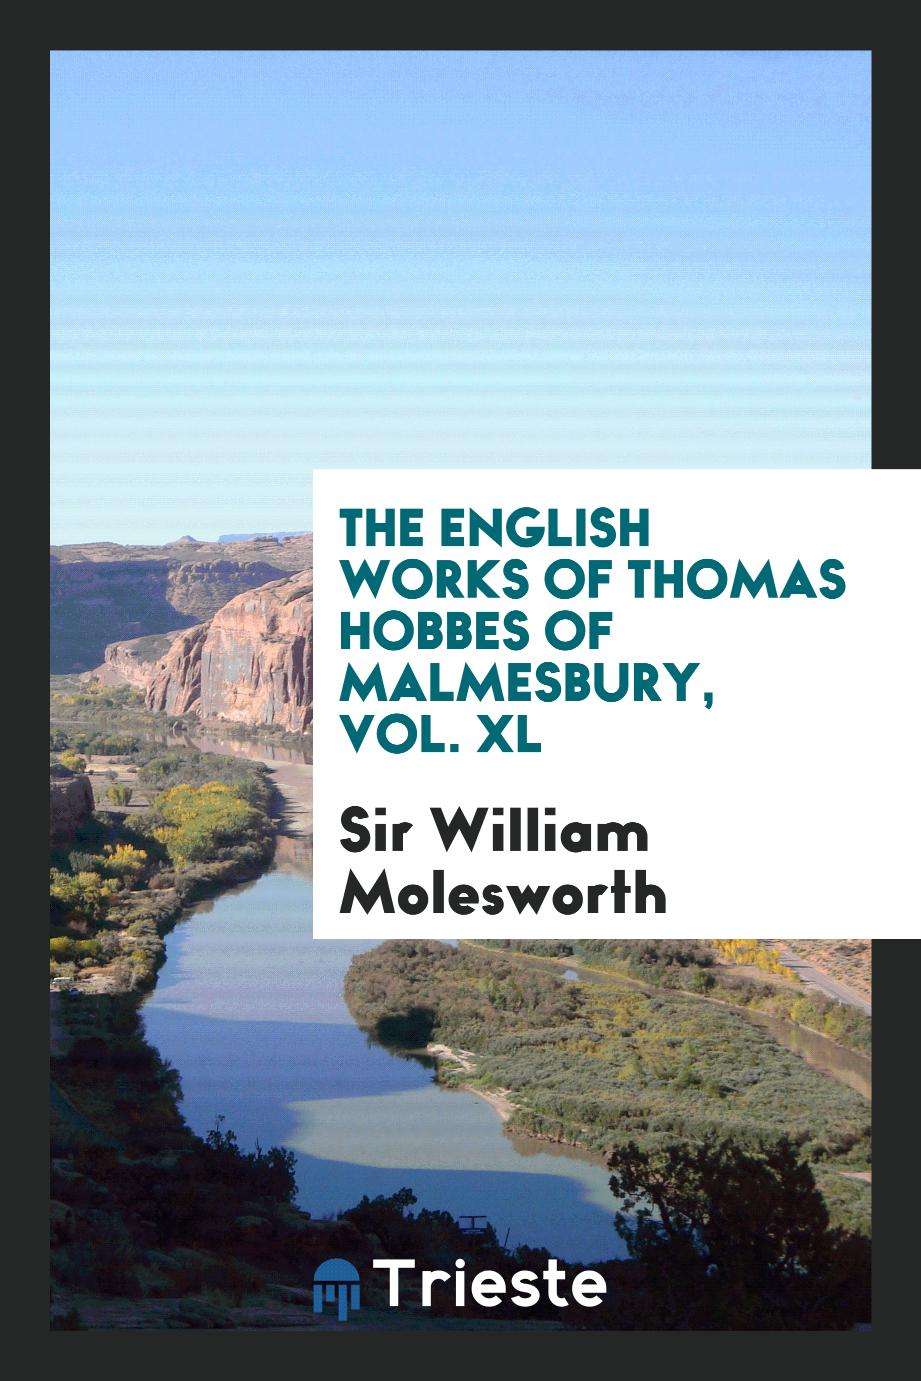 The English Works of Thomas Hobbes of Malmesbury, Vol. XL